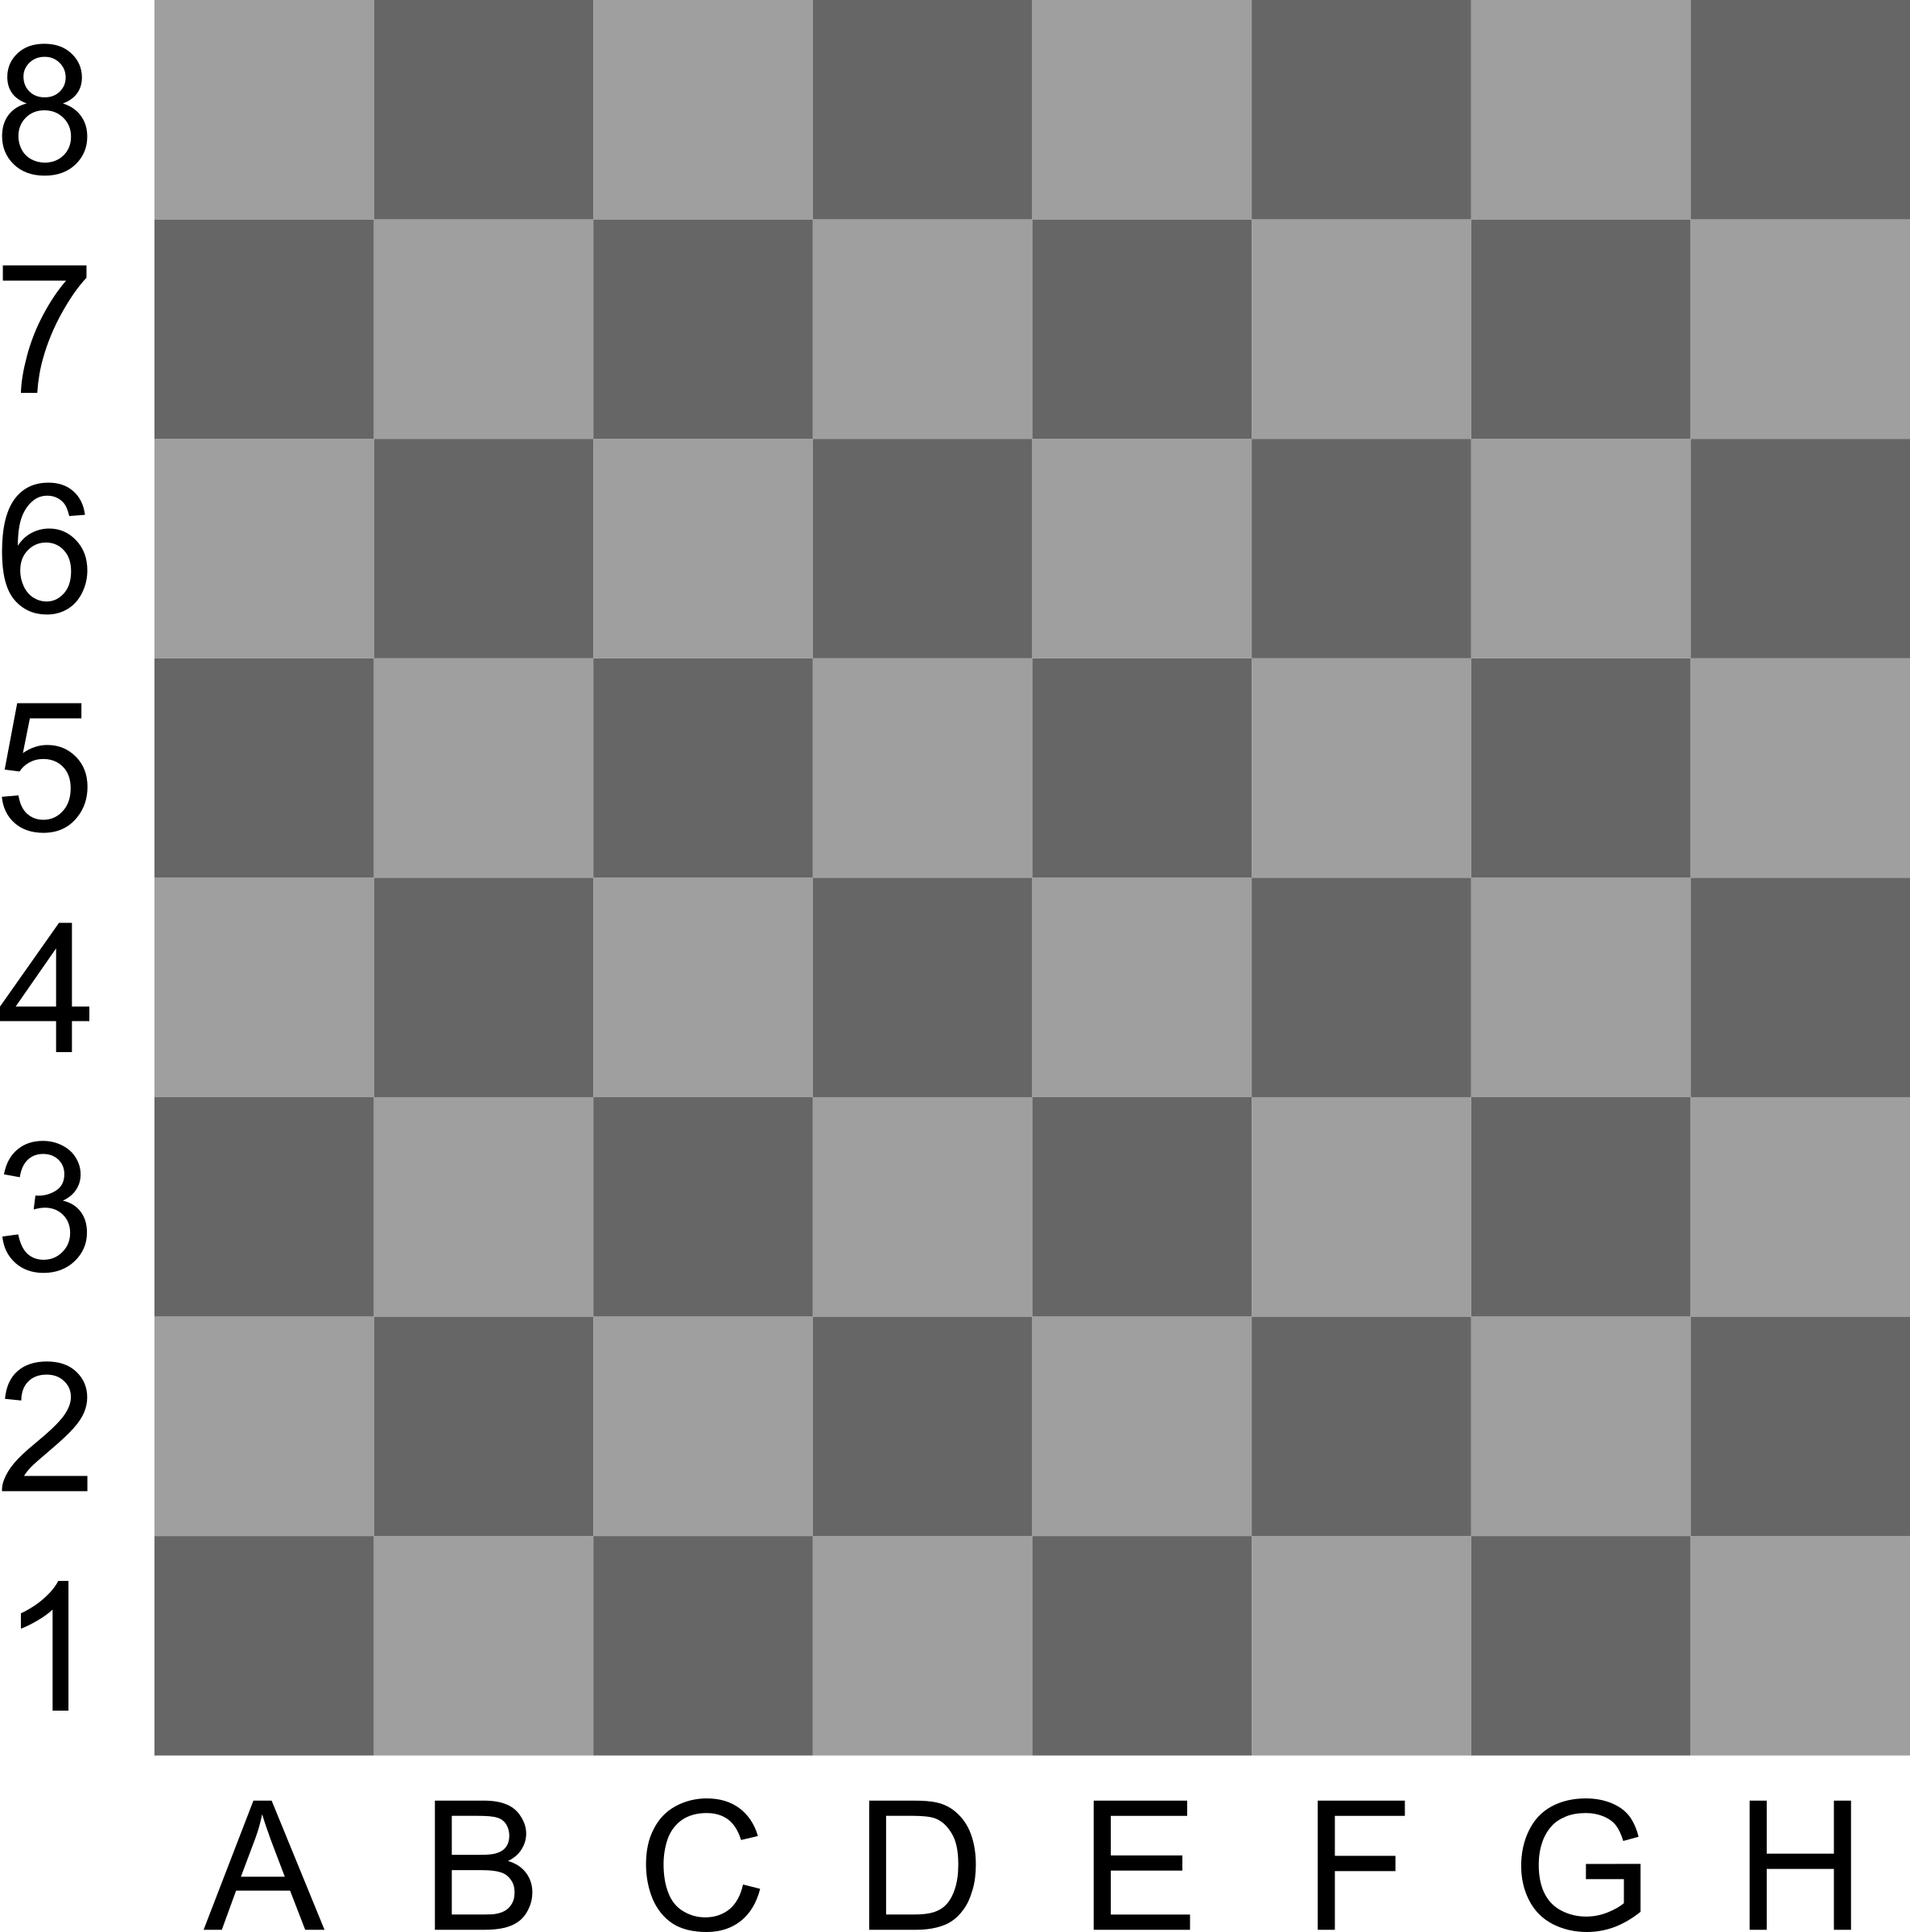 2D Chess set - Chessboard 3 by portablejim